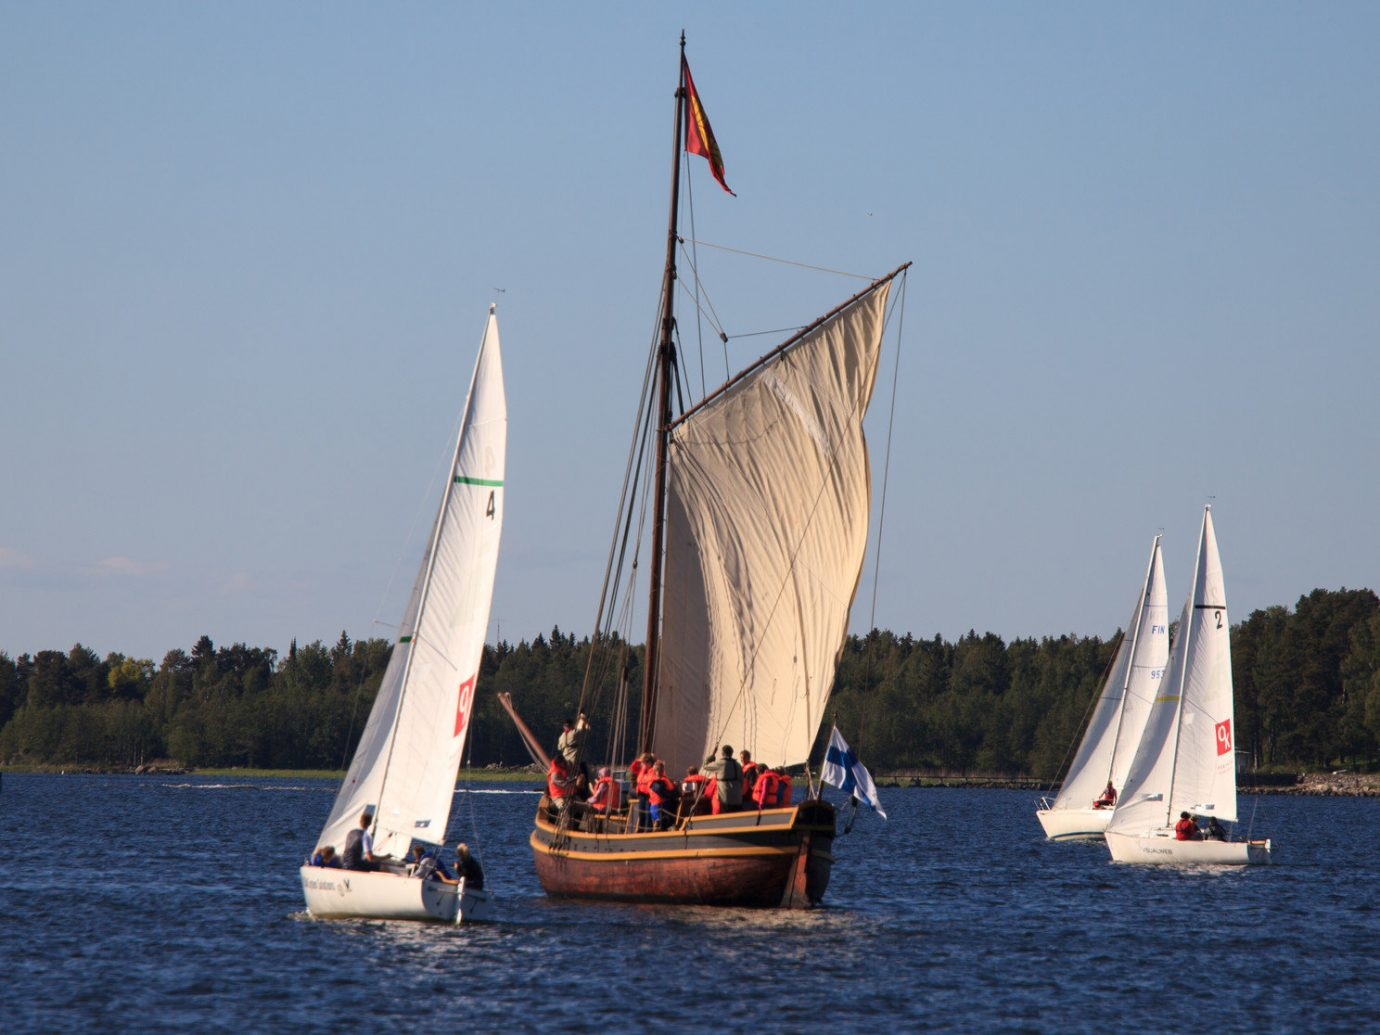 Finland Trip Ideas water outdoor sky watercraft Boat transport sailing vessel sailboat sail dinghy sailing sailing sailing ship vehicle Lake sports Sea floating windsports keelboat sailboat racing mast dinghy ship yacht racing distance day